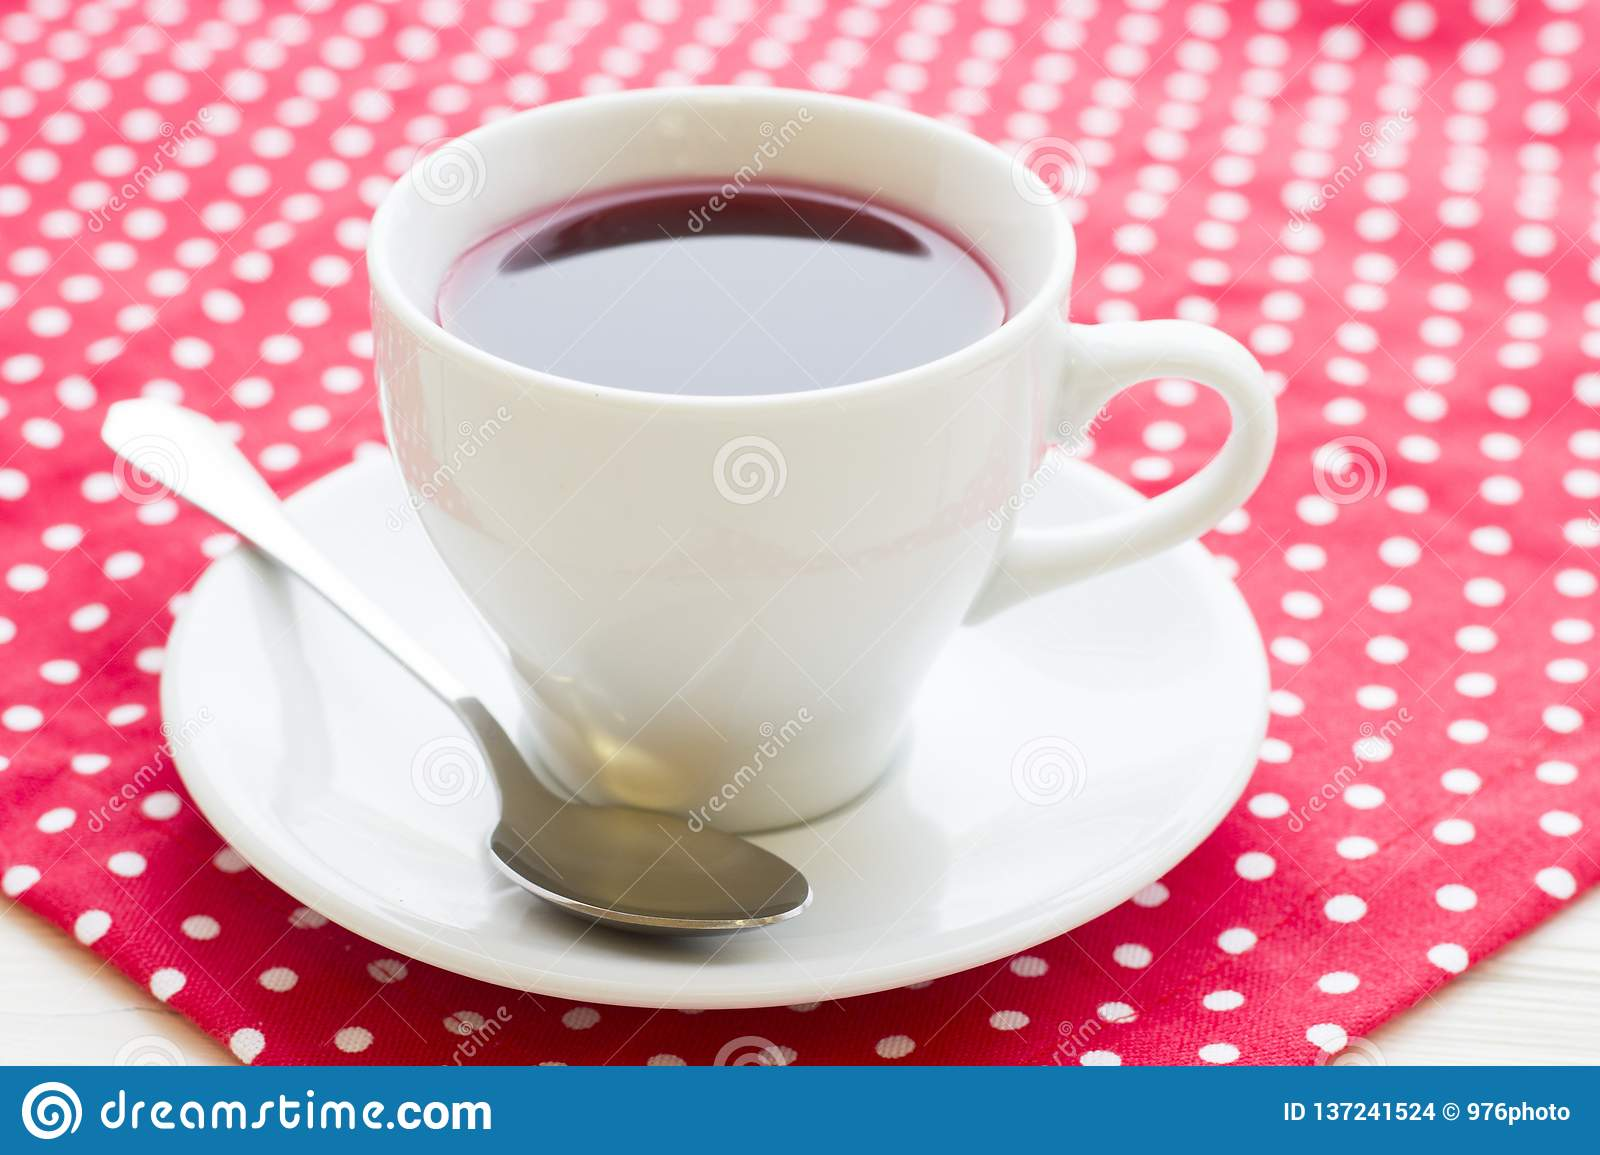 Black tea ceremony - a cup of tea, teapot, flowers on a red with white dots background